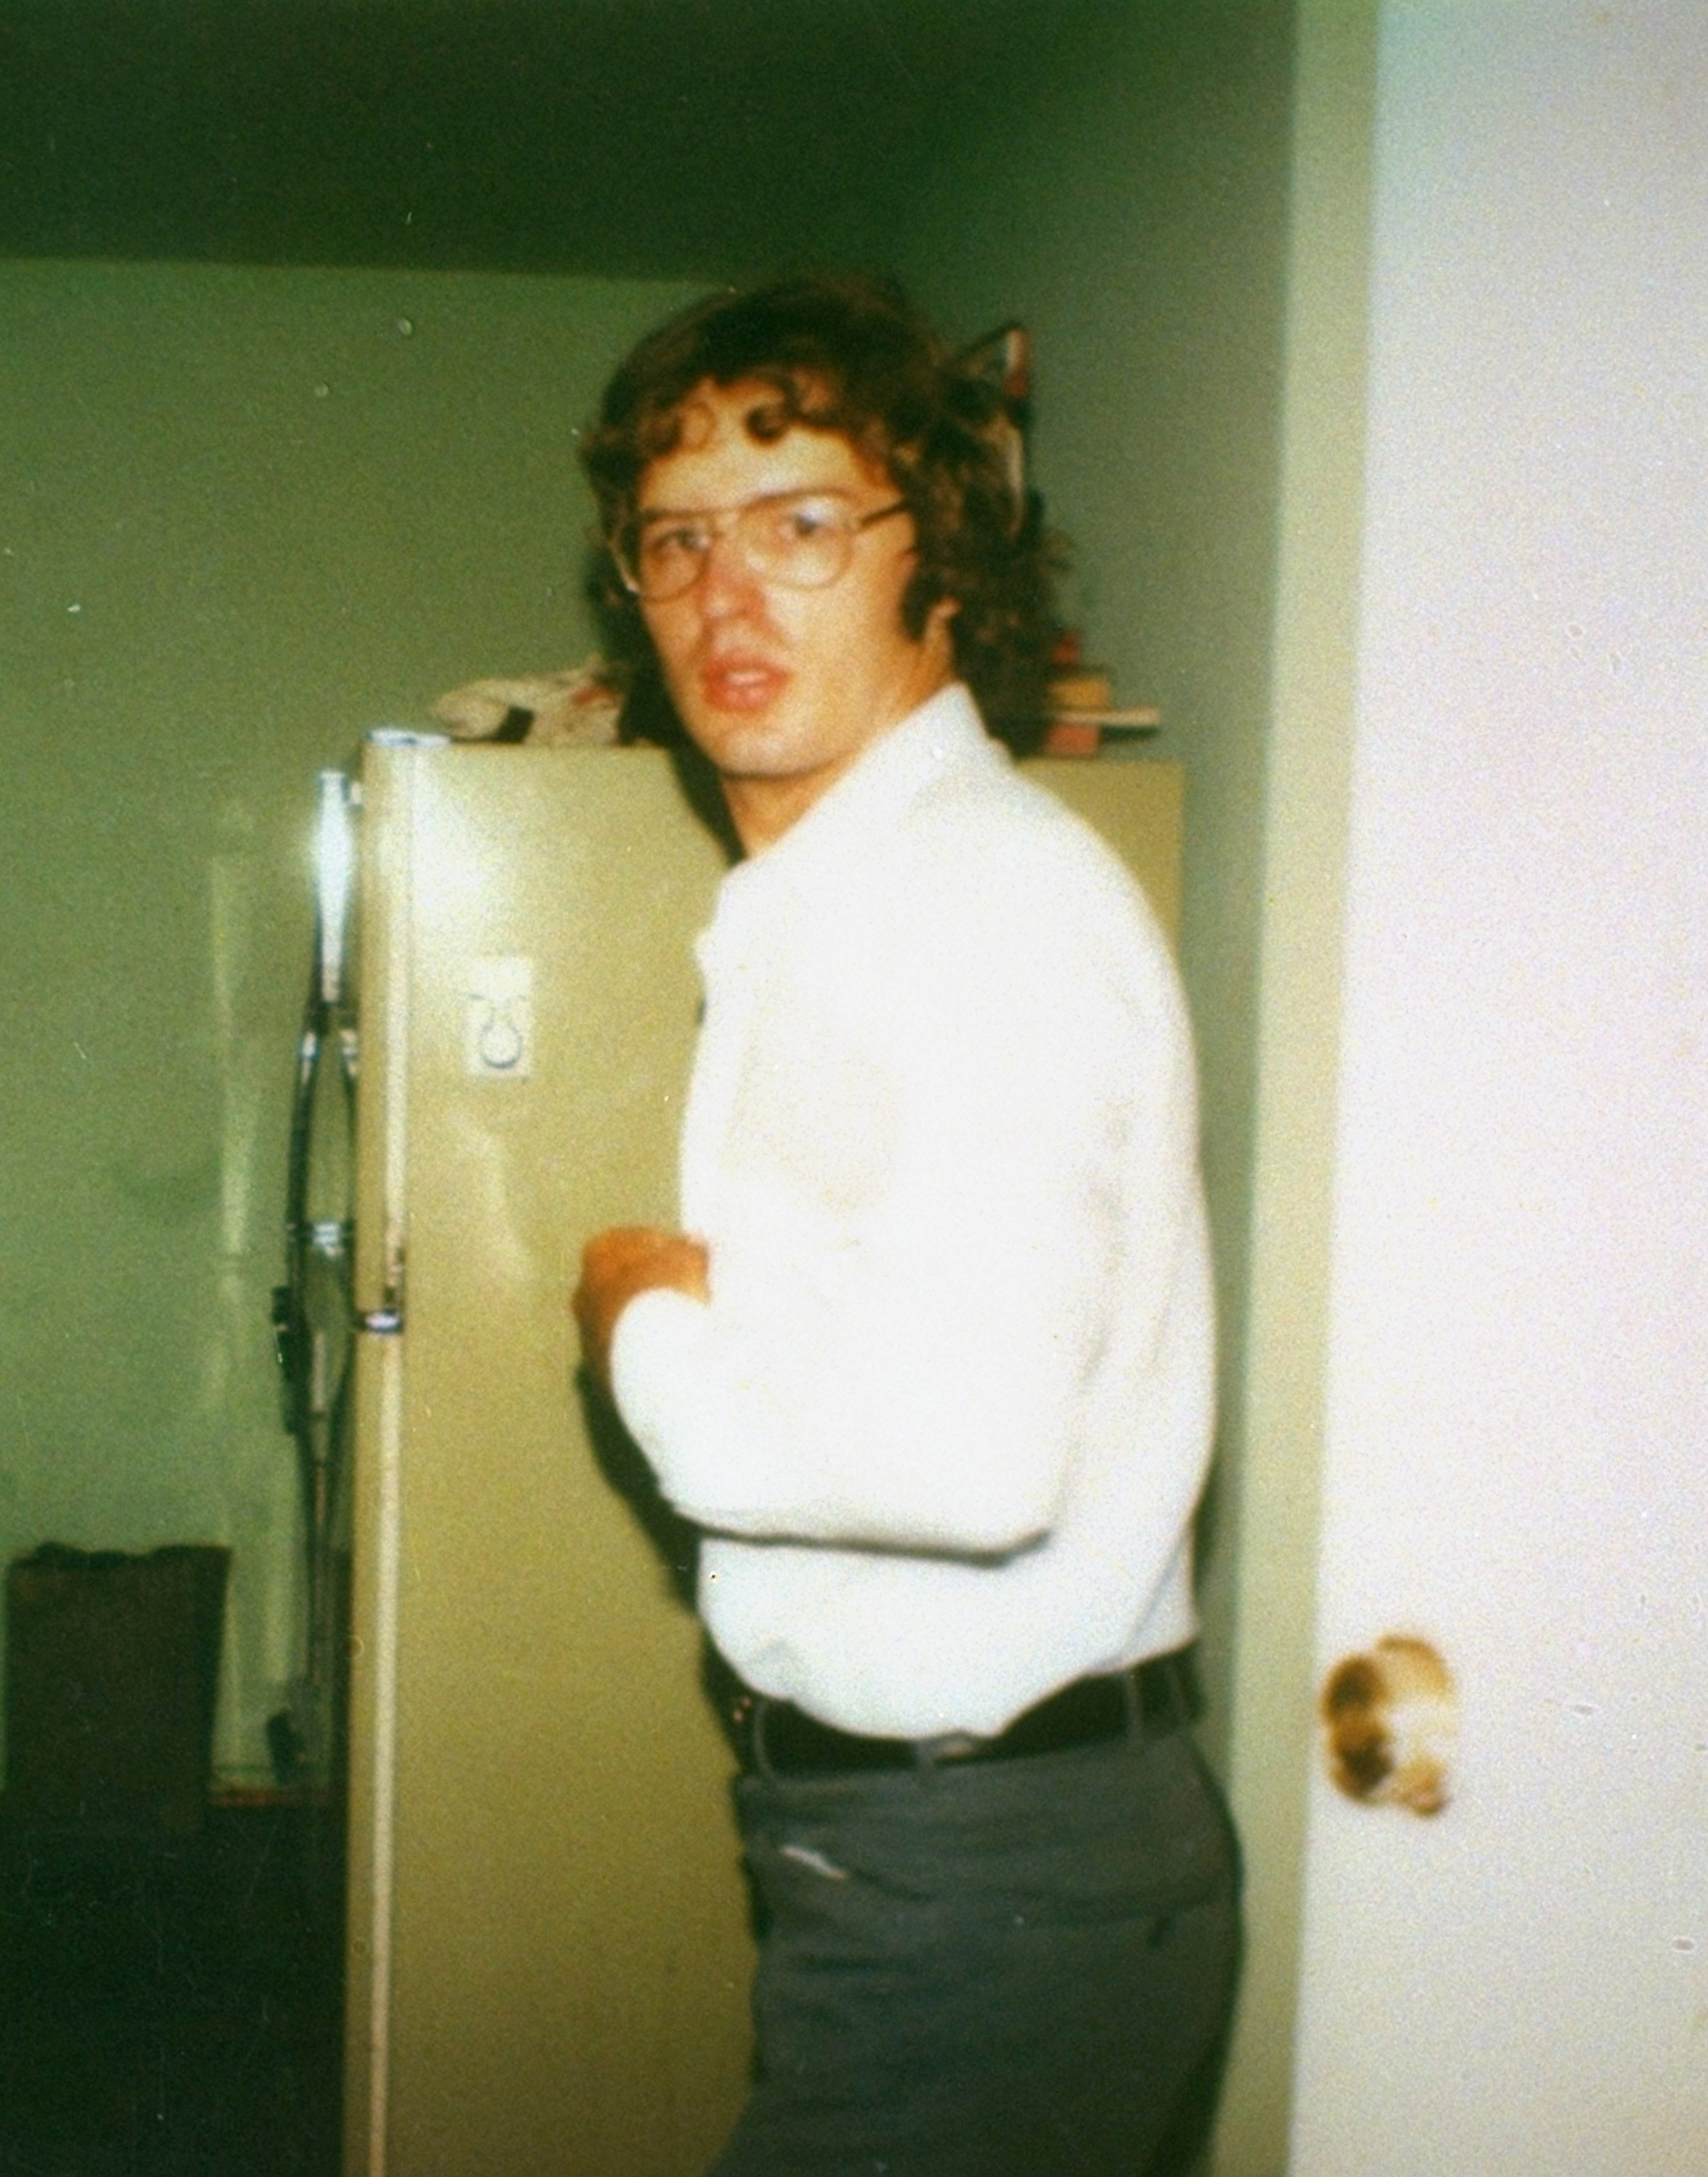 A 1981 photo of David Koresh taken at the Mount Carmel compound of the Branch Davidians cult near Waco, Texas. Twelve years later he and the compound would find themselves involved in a tragic standoff with the police. (Credit: AP Photo)